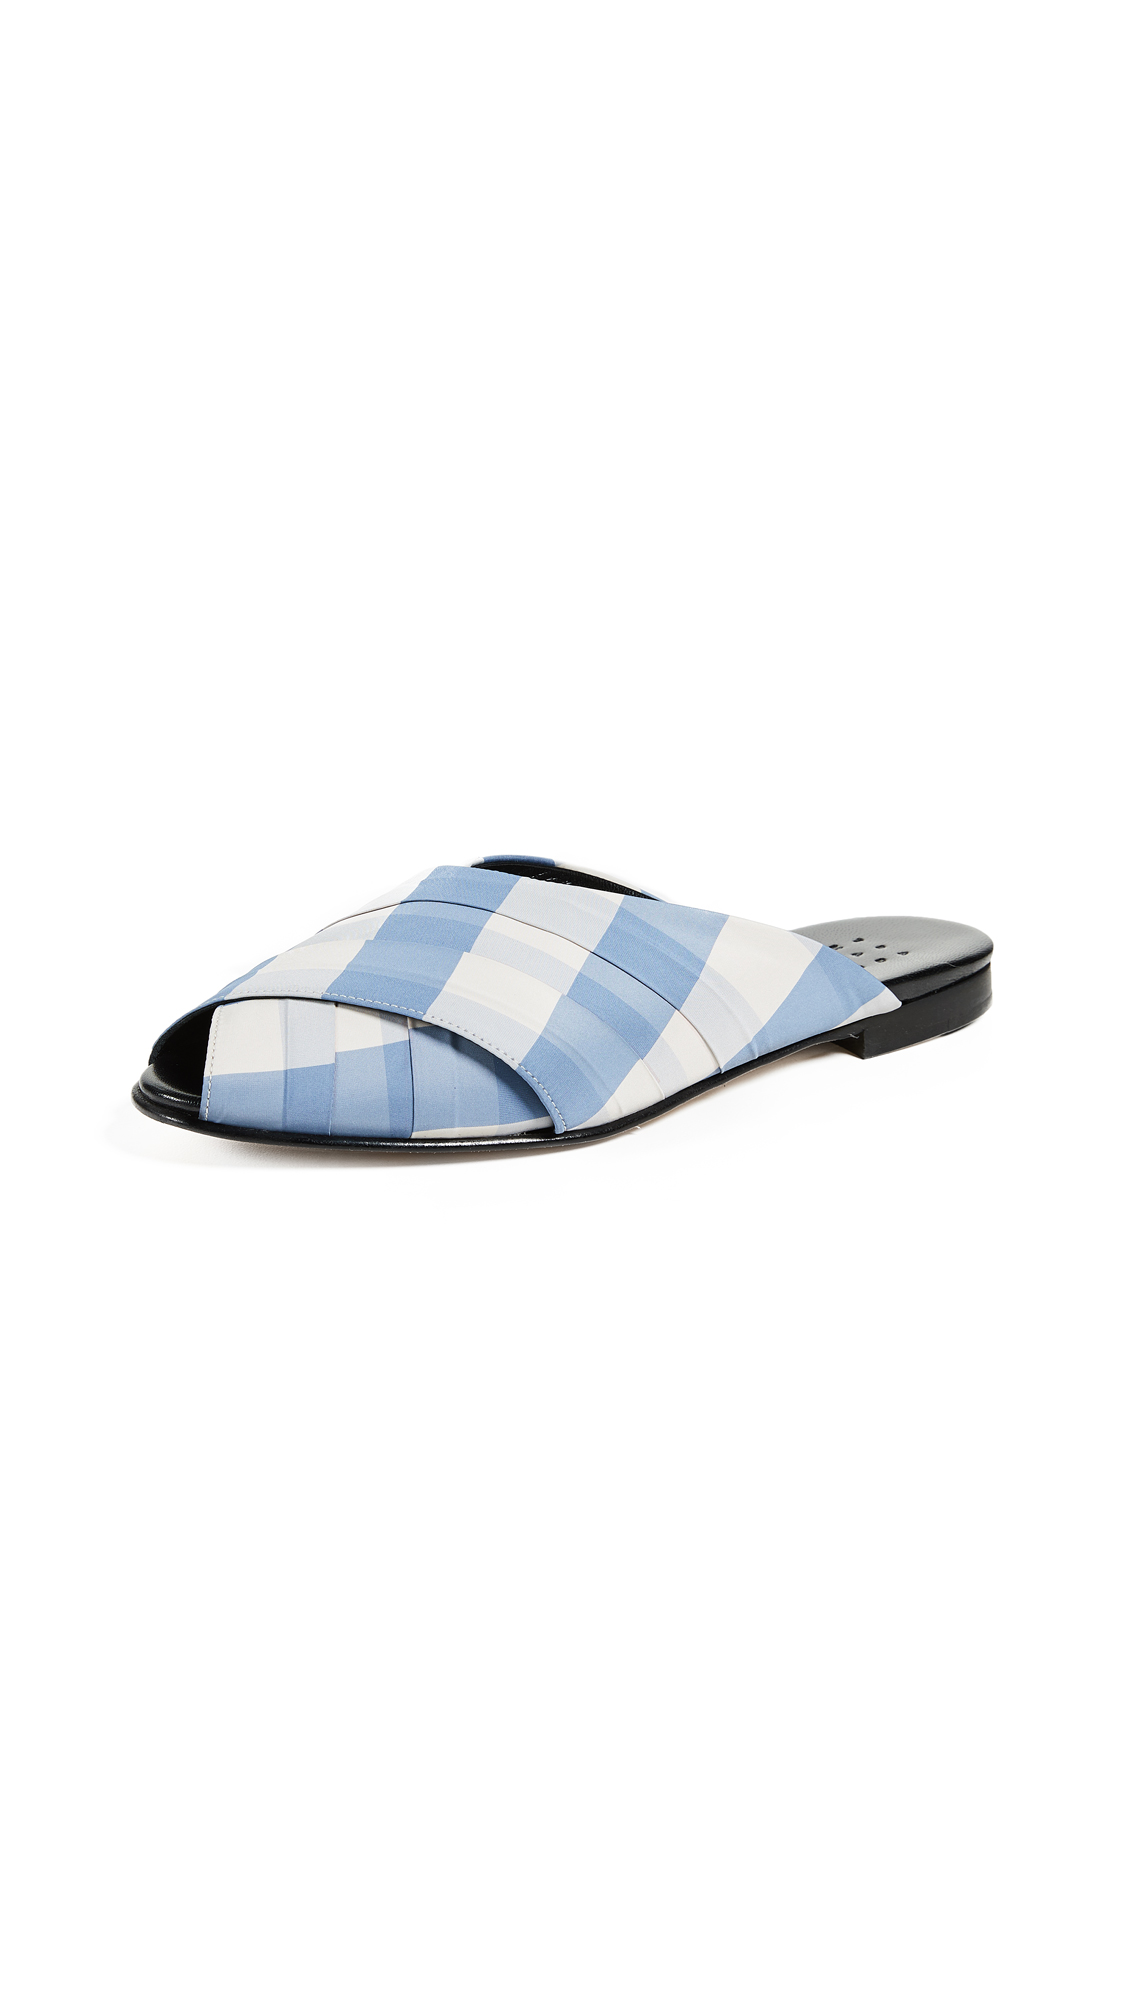 Trademark Gingham Wrapped Pajama Sandals - Blue/Cream